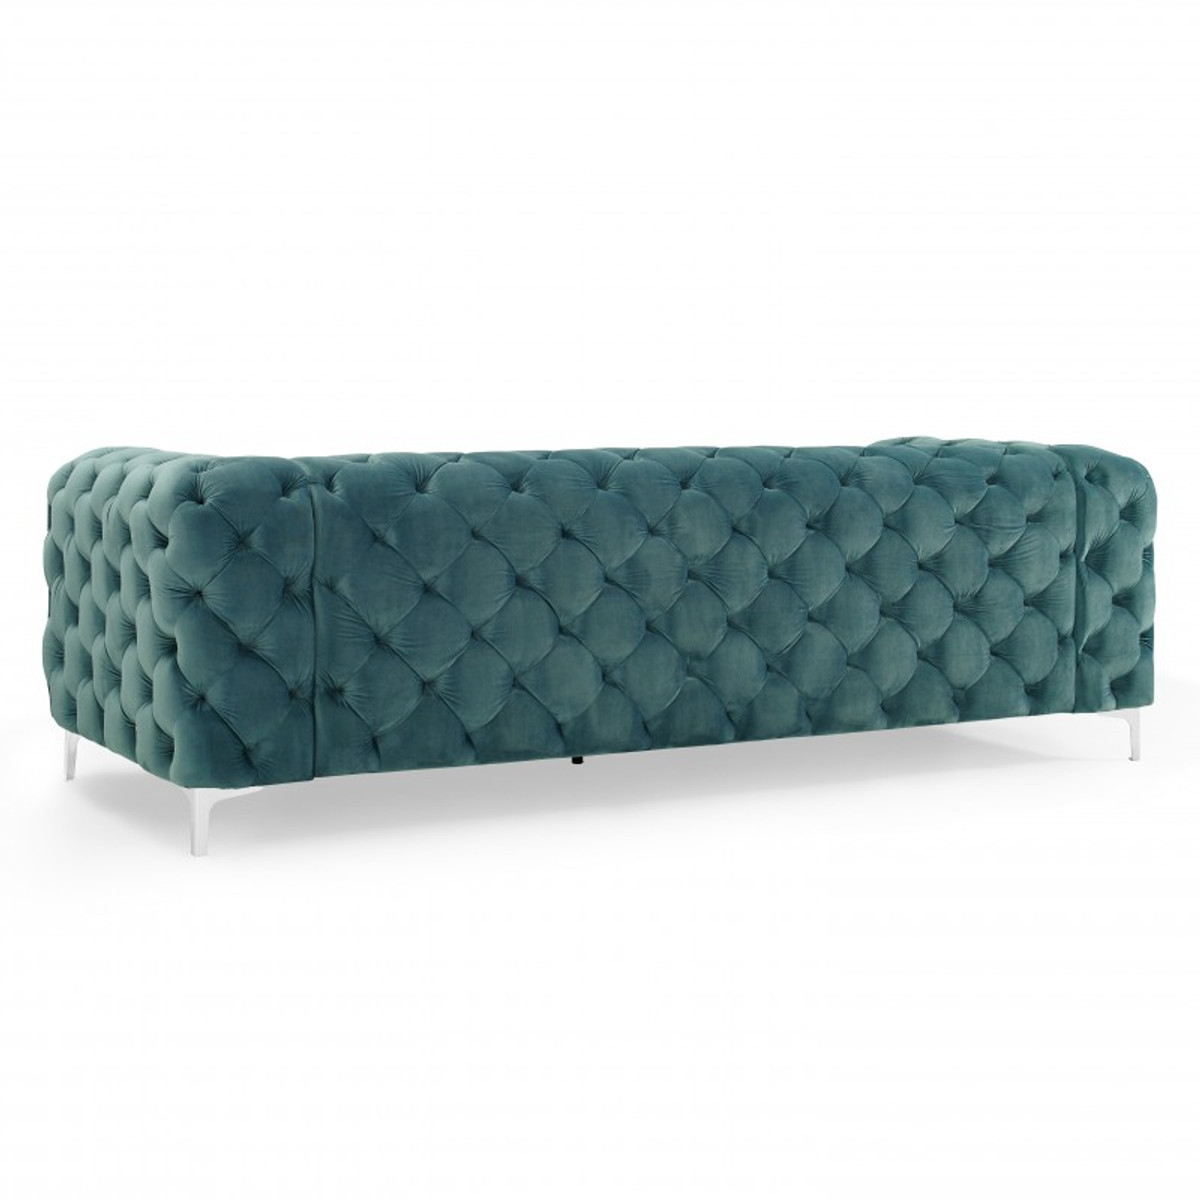 Casa Padrino Chesterfield Sofa in Aqua 238 x 97 x H. 73 cm - Modern Chesterfield 2